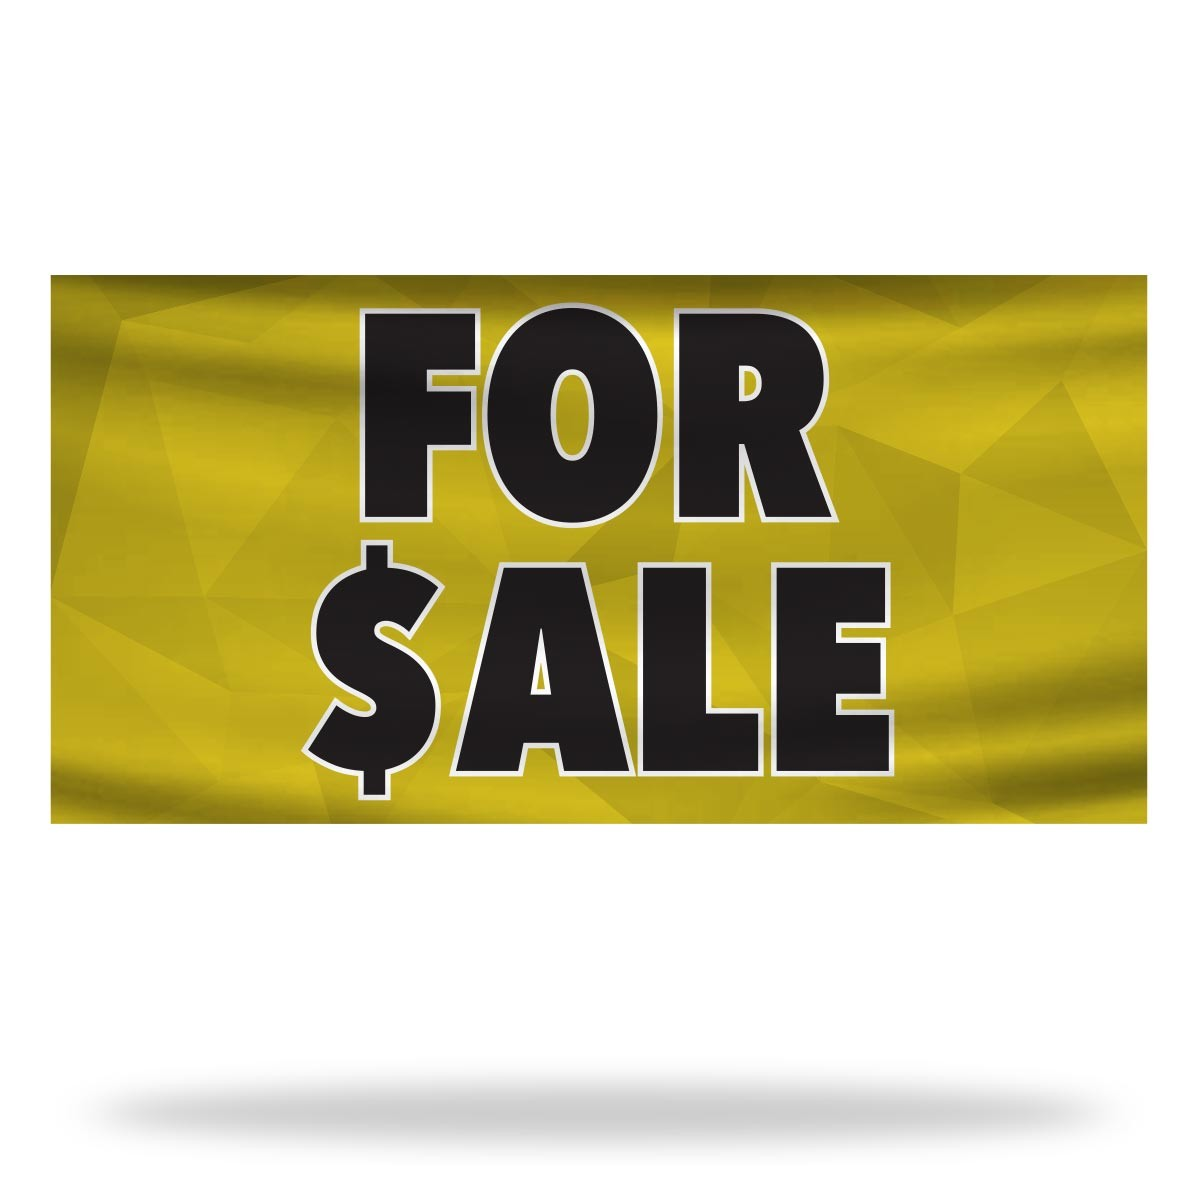 For Sale Flags & Banners Design 02